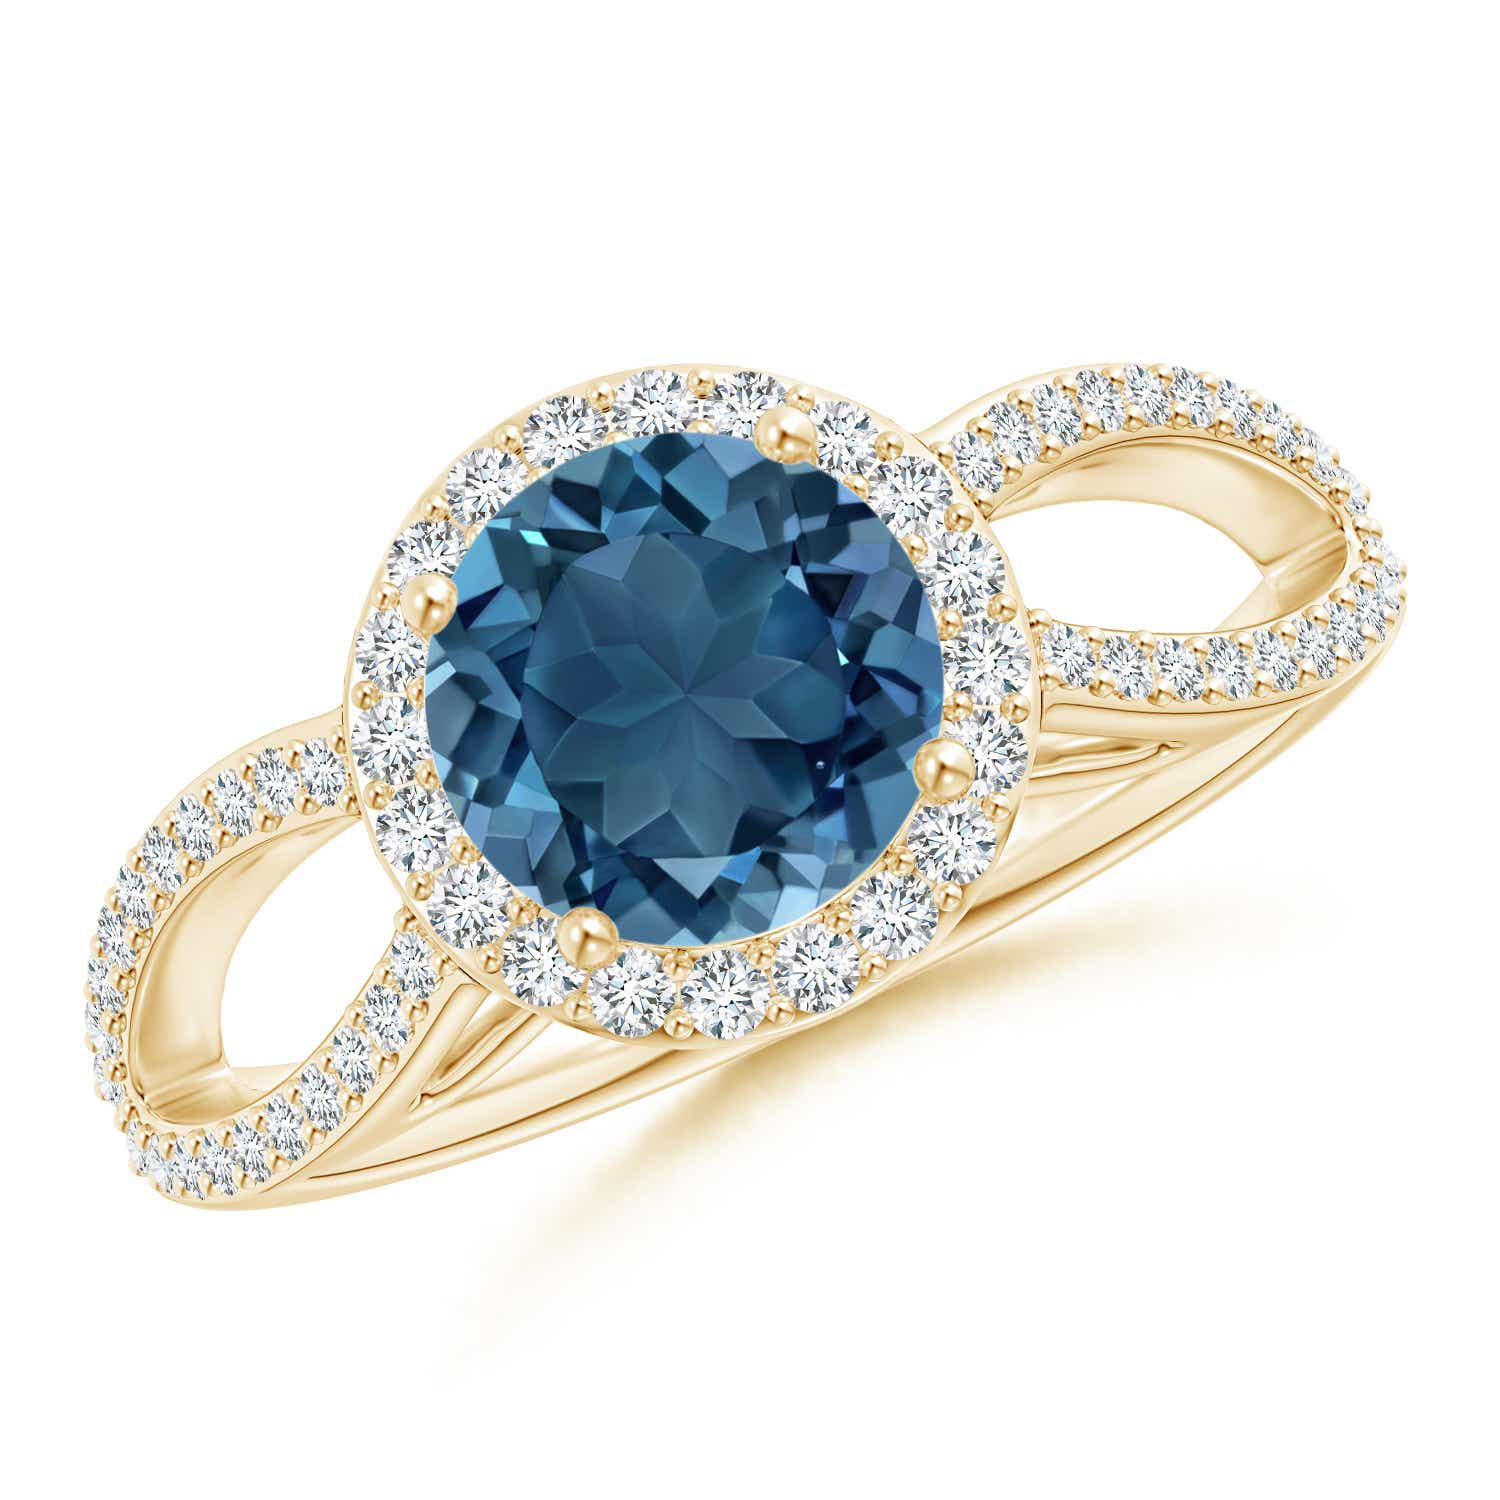 Angara London Blue Topaz Ring with Diamond Halo in Yellow Gold